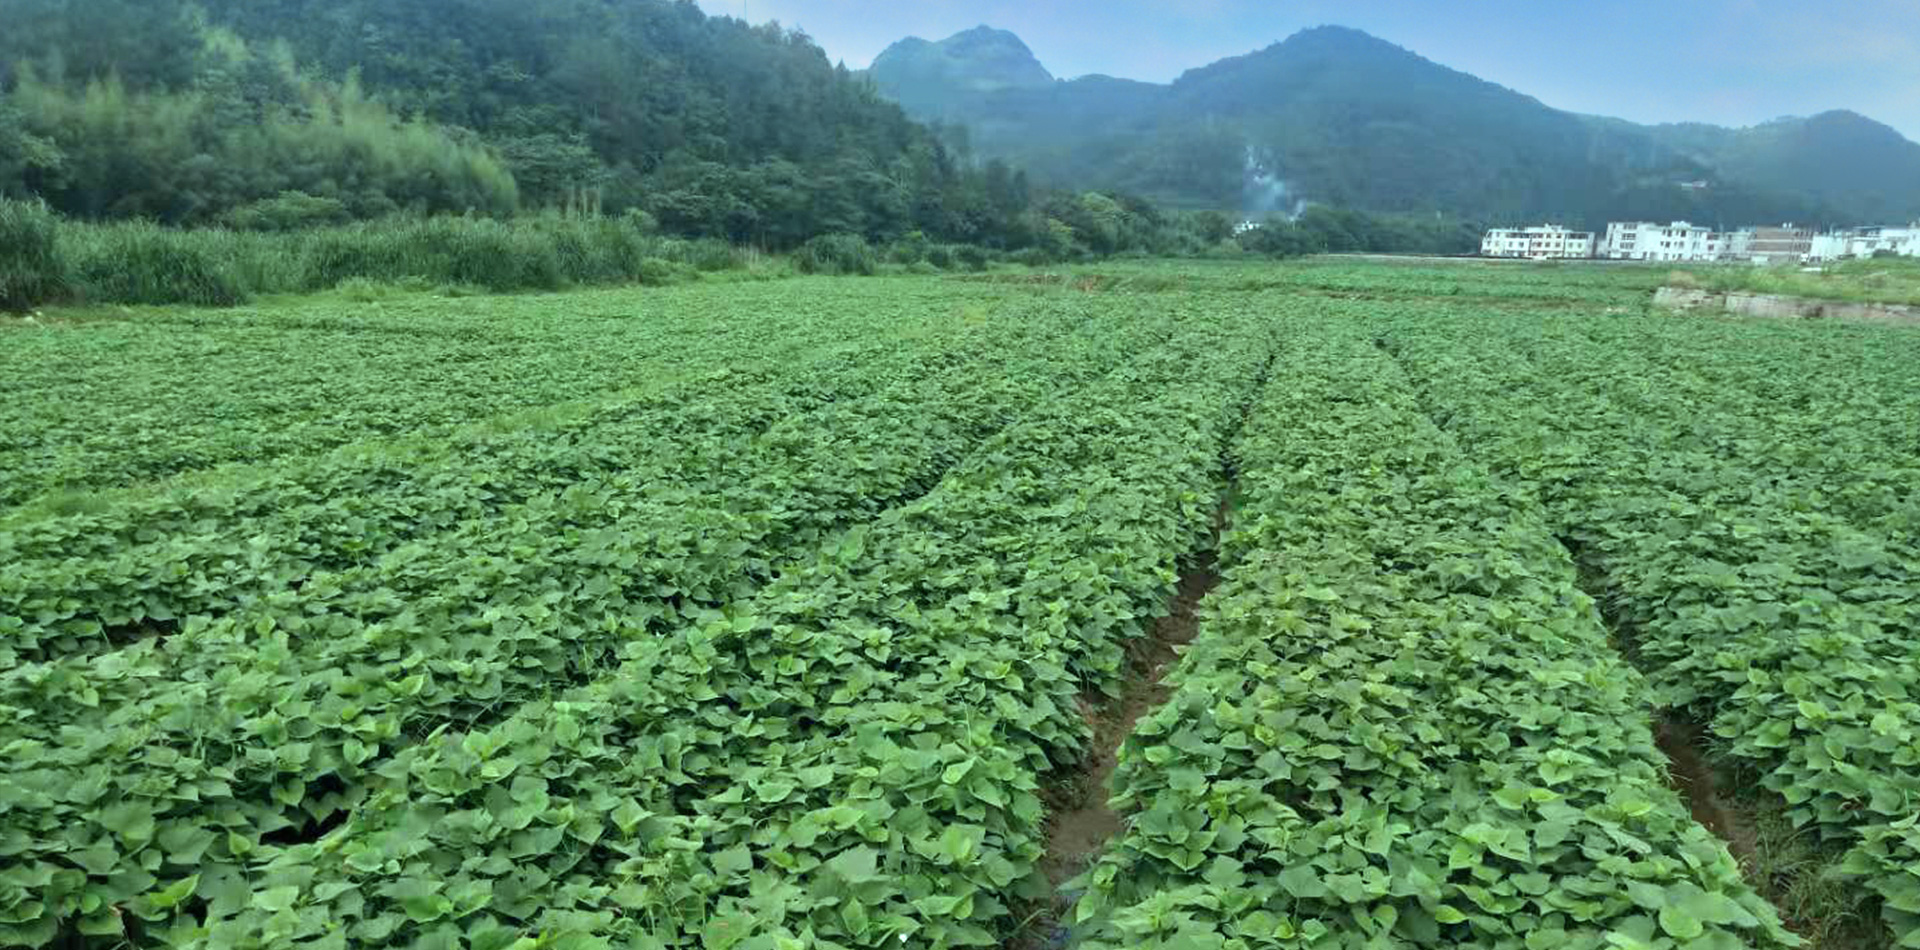 Thousands of acres of organic sweet potato cultivation base